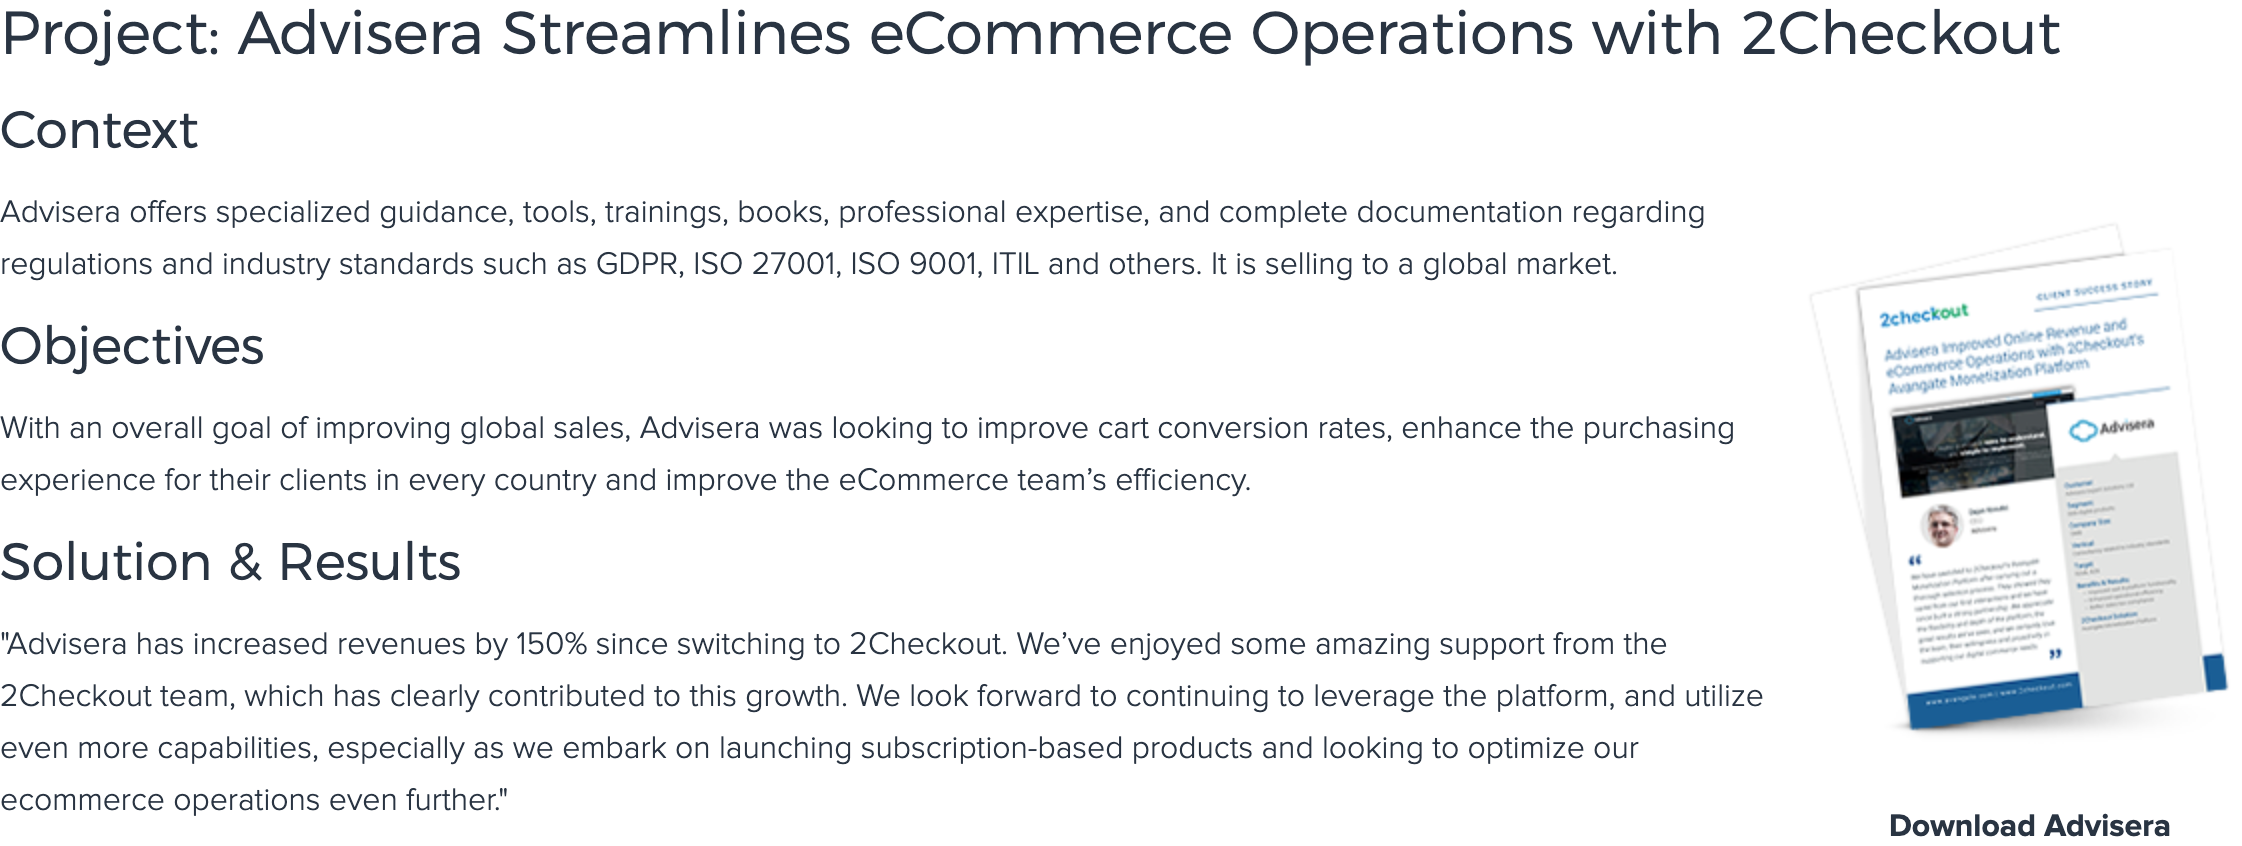 2Checkout Case Study